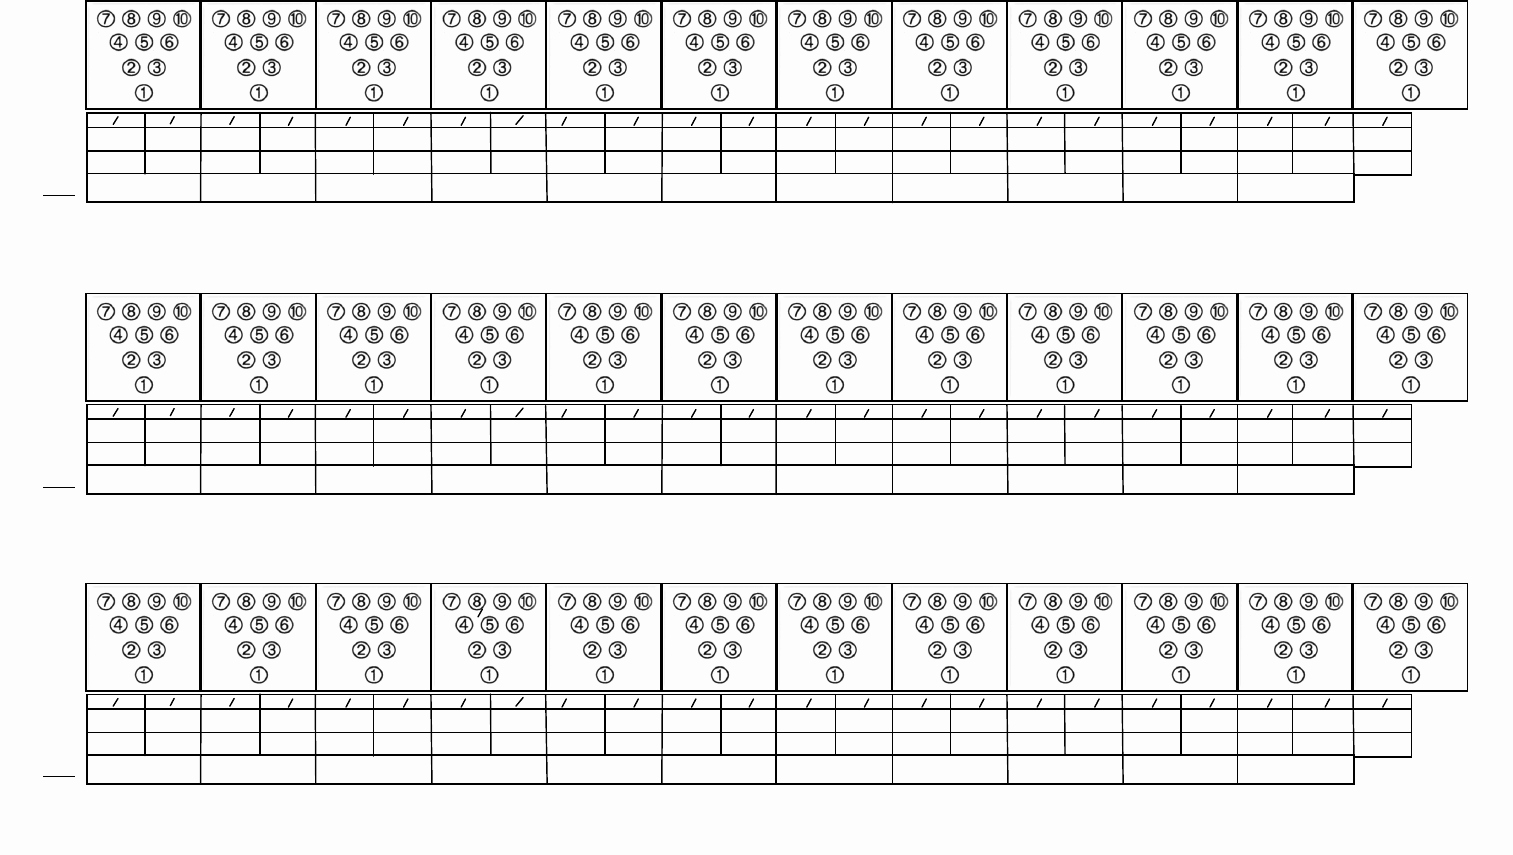 Bowling Scoring Sheet Excel Luxury Download Printable Bowling Score Sheet with Pins